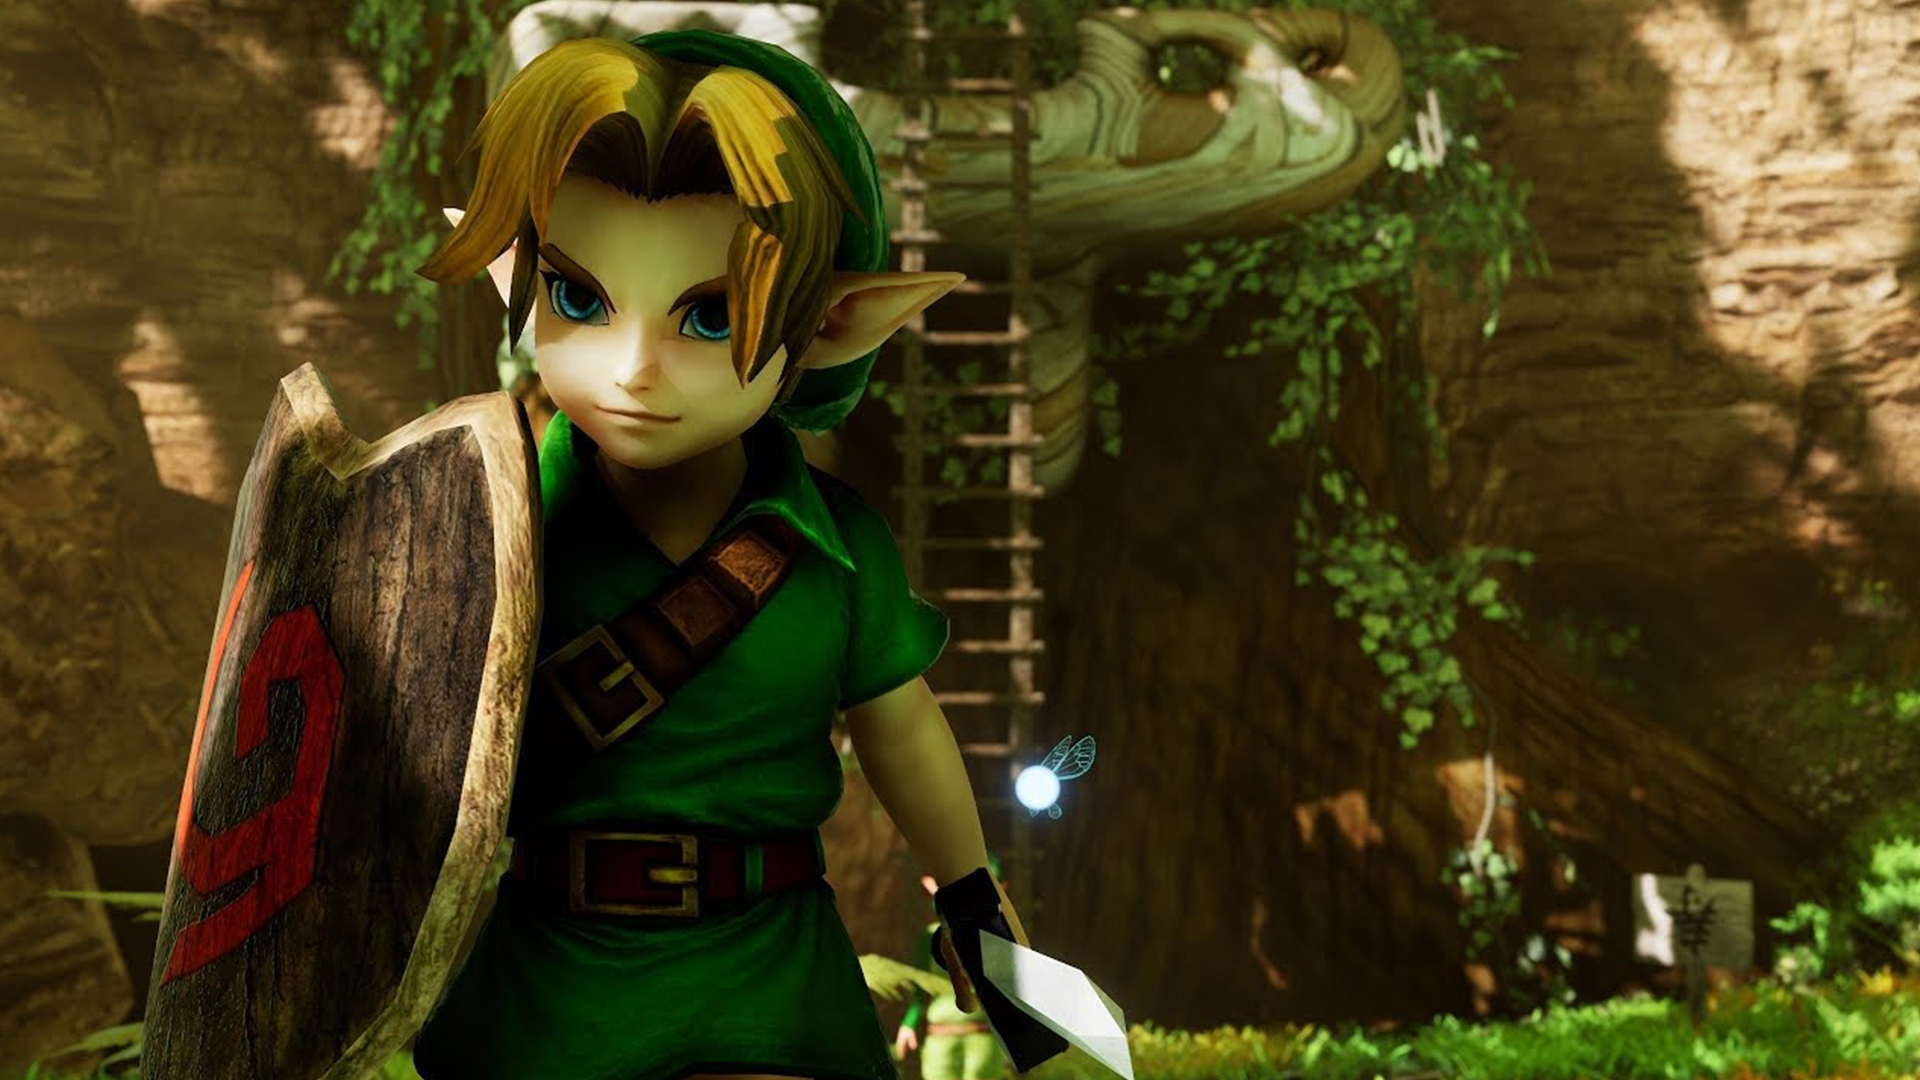 Zelda Ocarina Of Time Unreal Remake Now Has A Completely Playable